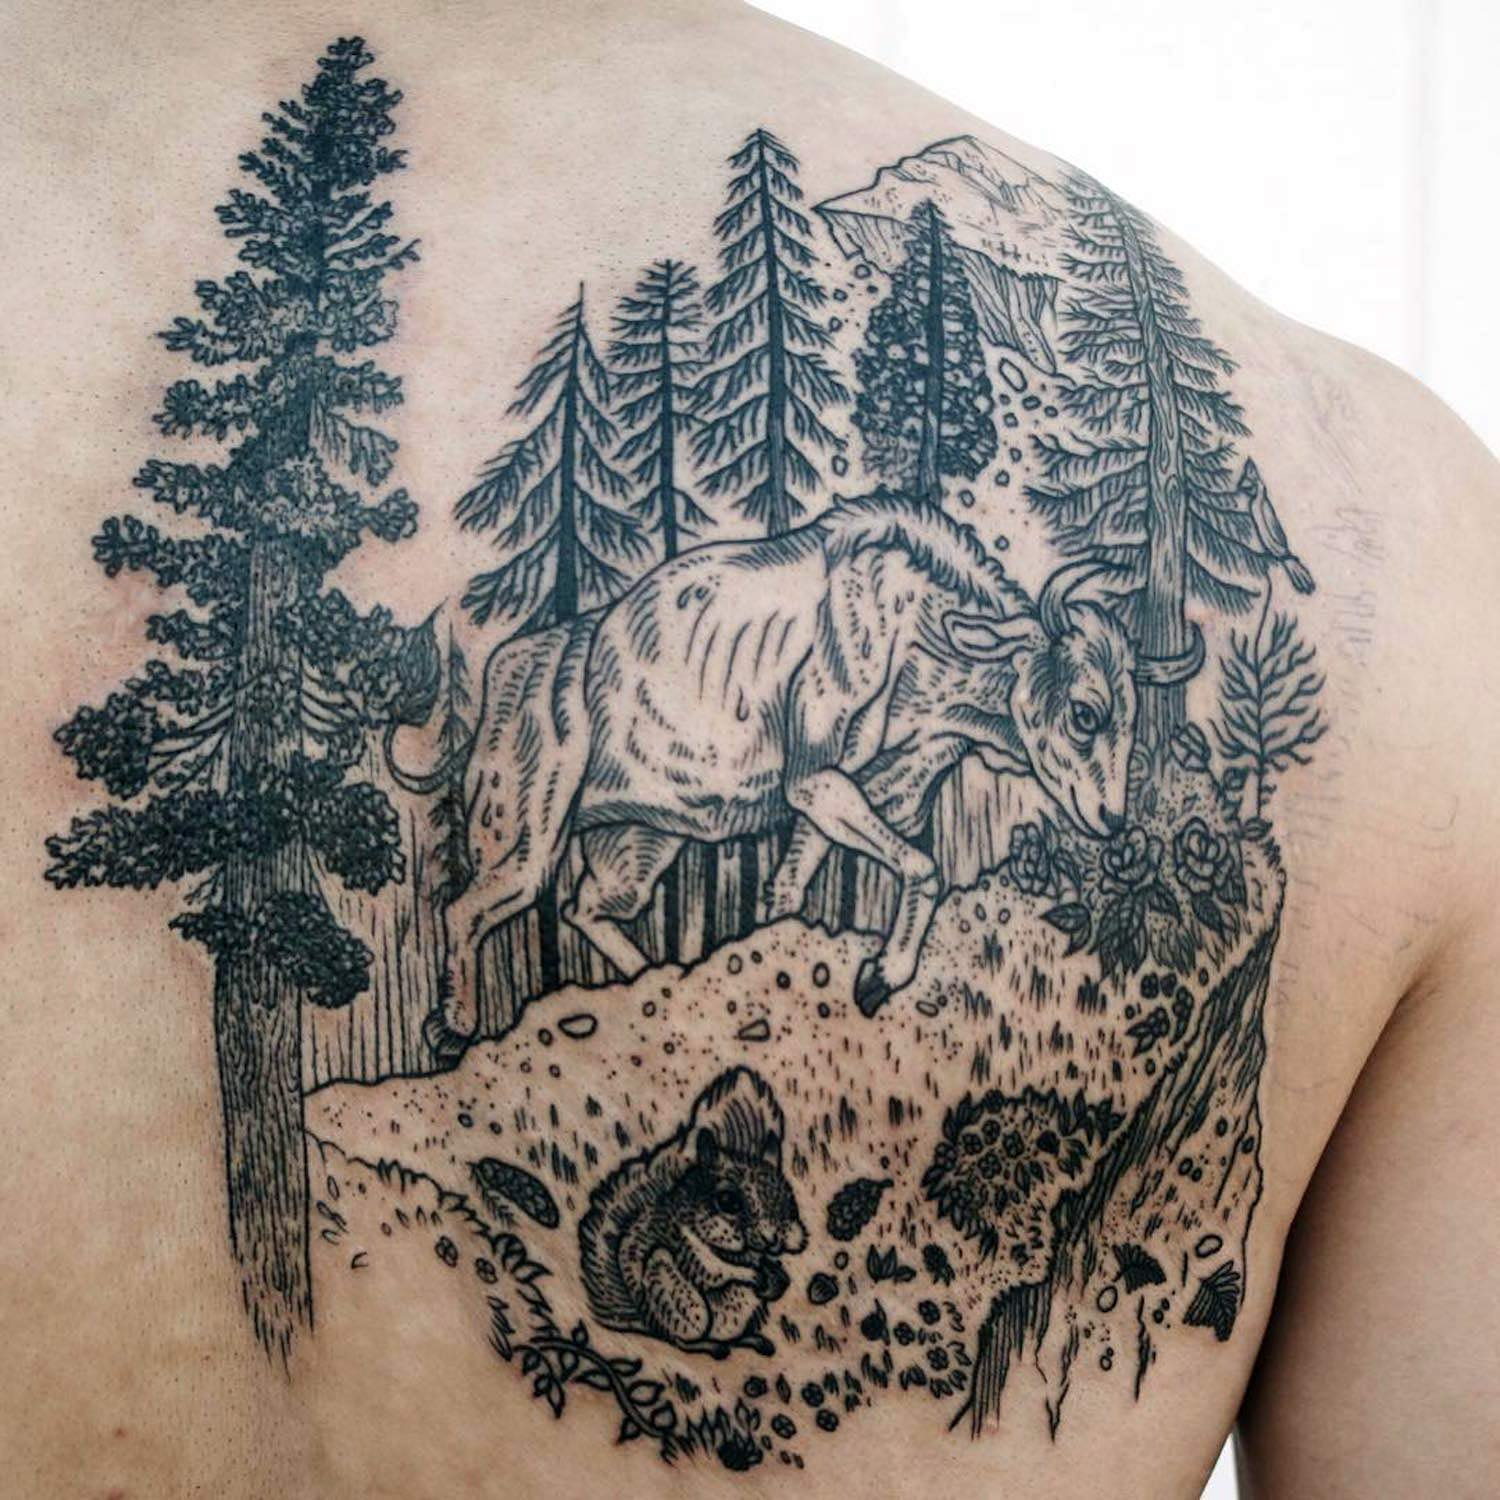 Nature scene tattoo on back